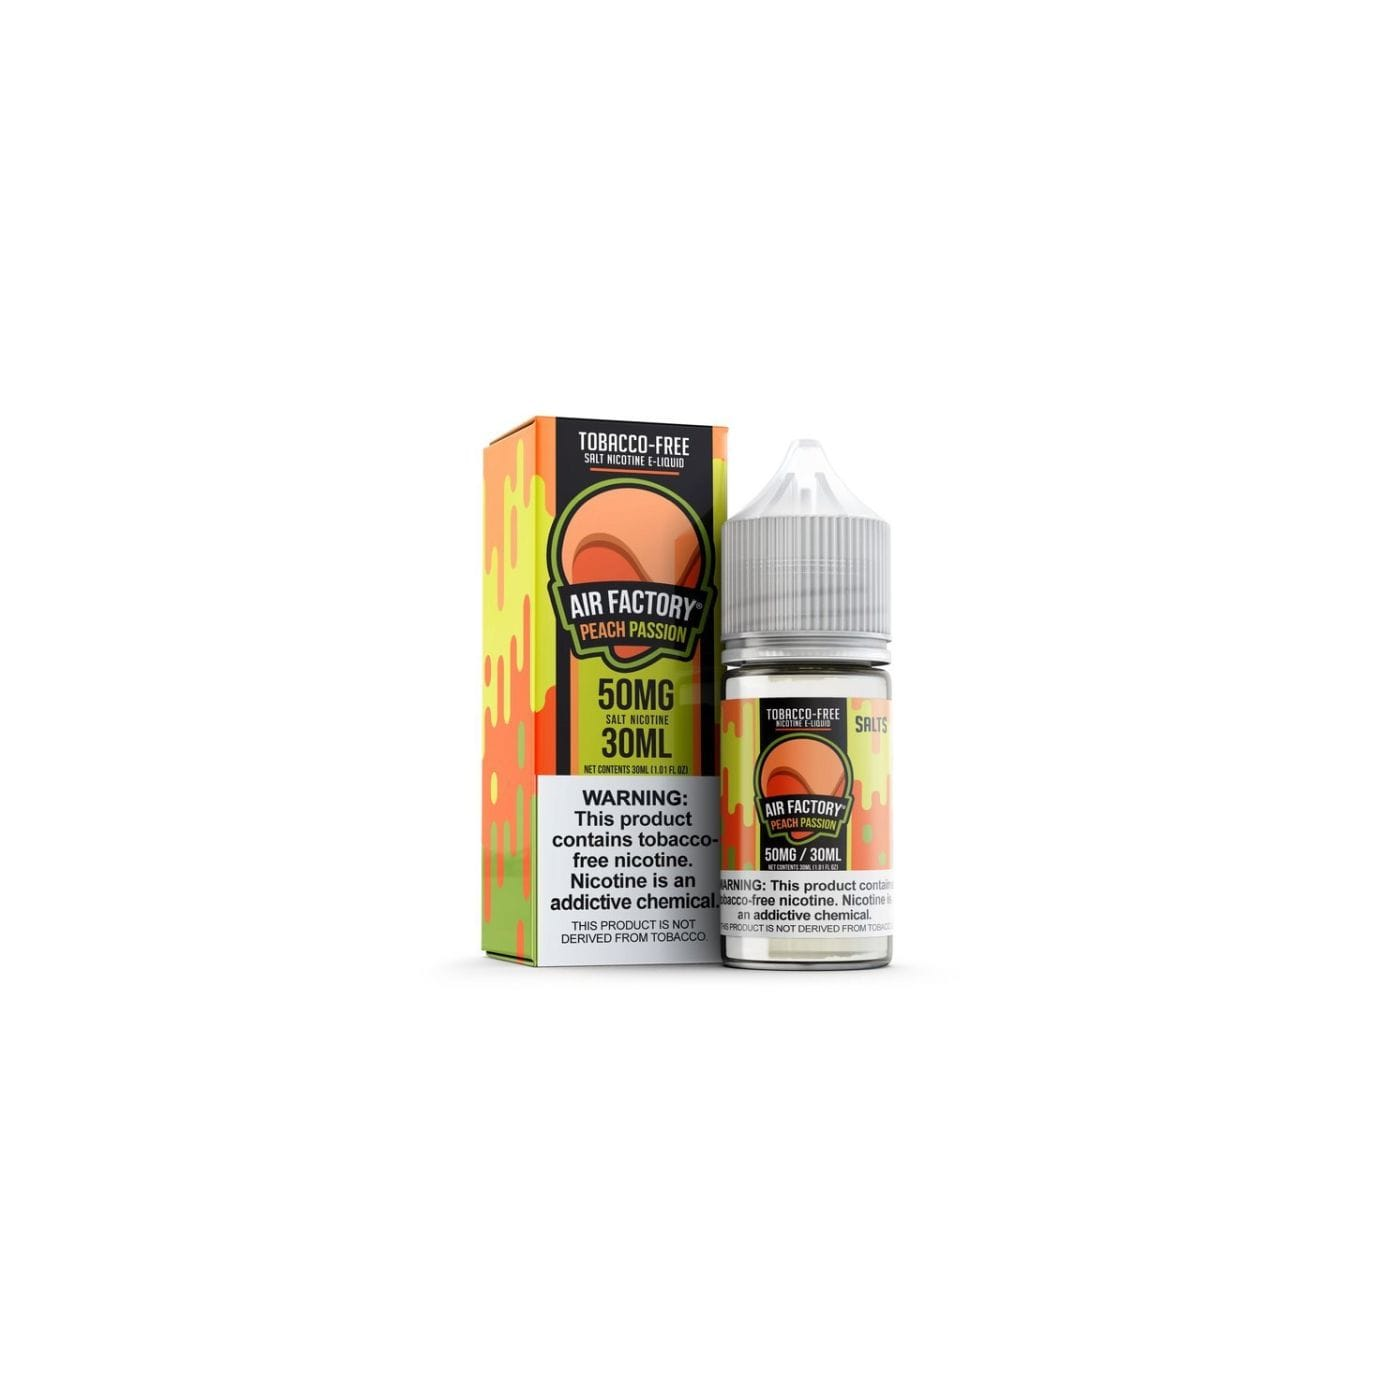 Air factory Synthetic Salts Peach Passion